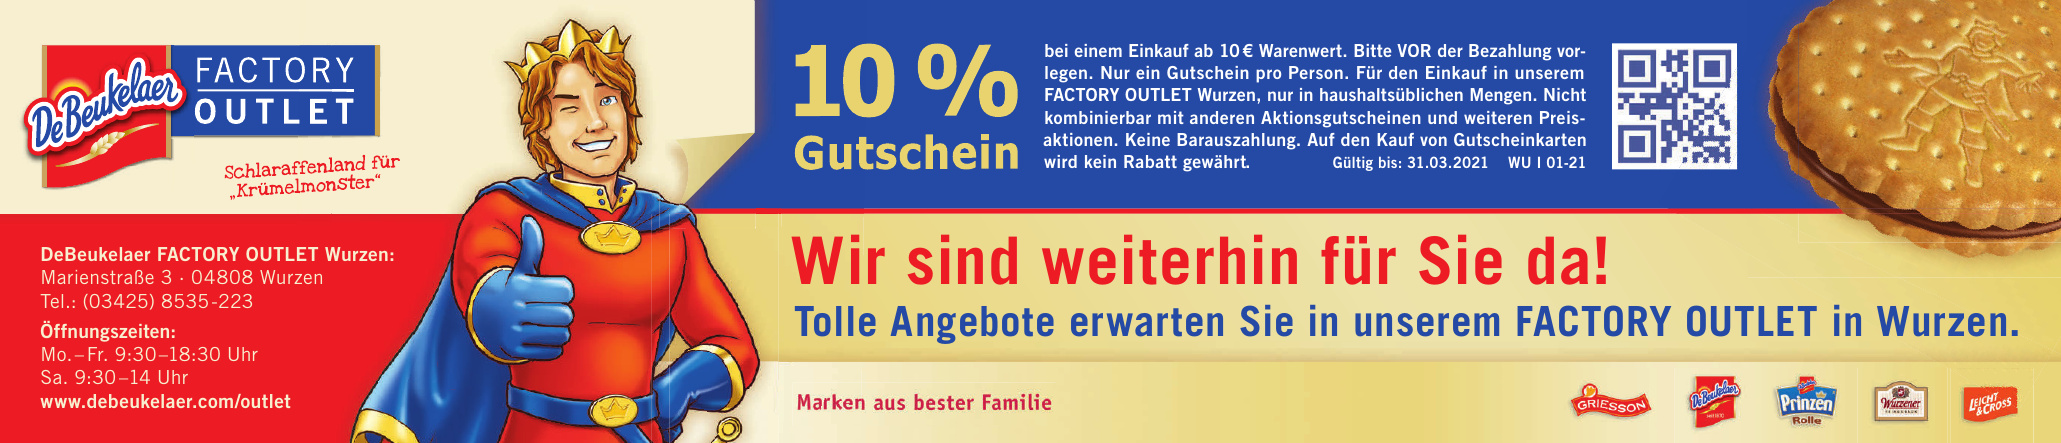 DeBeukelaer Factory Outlet